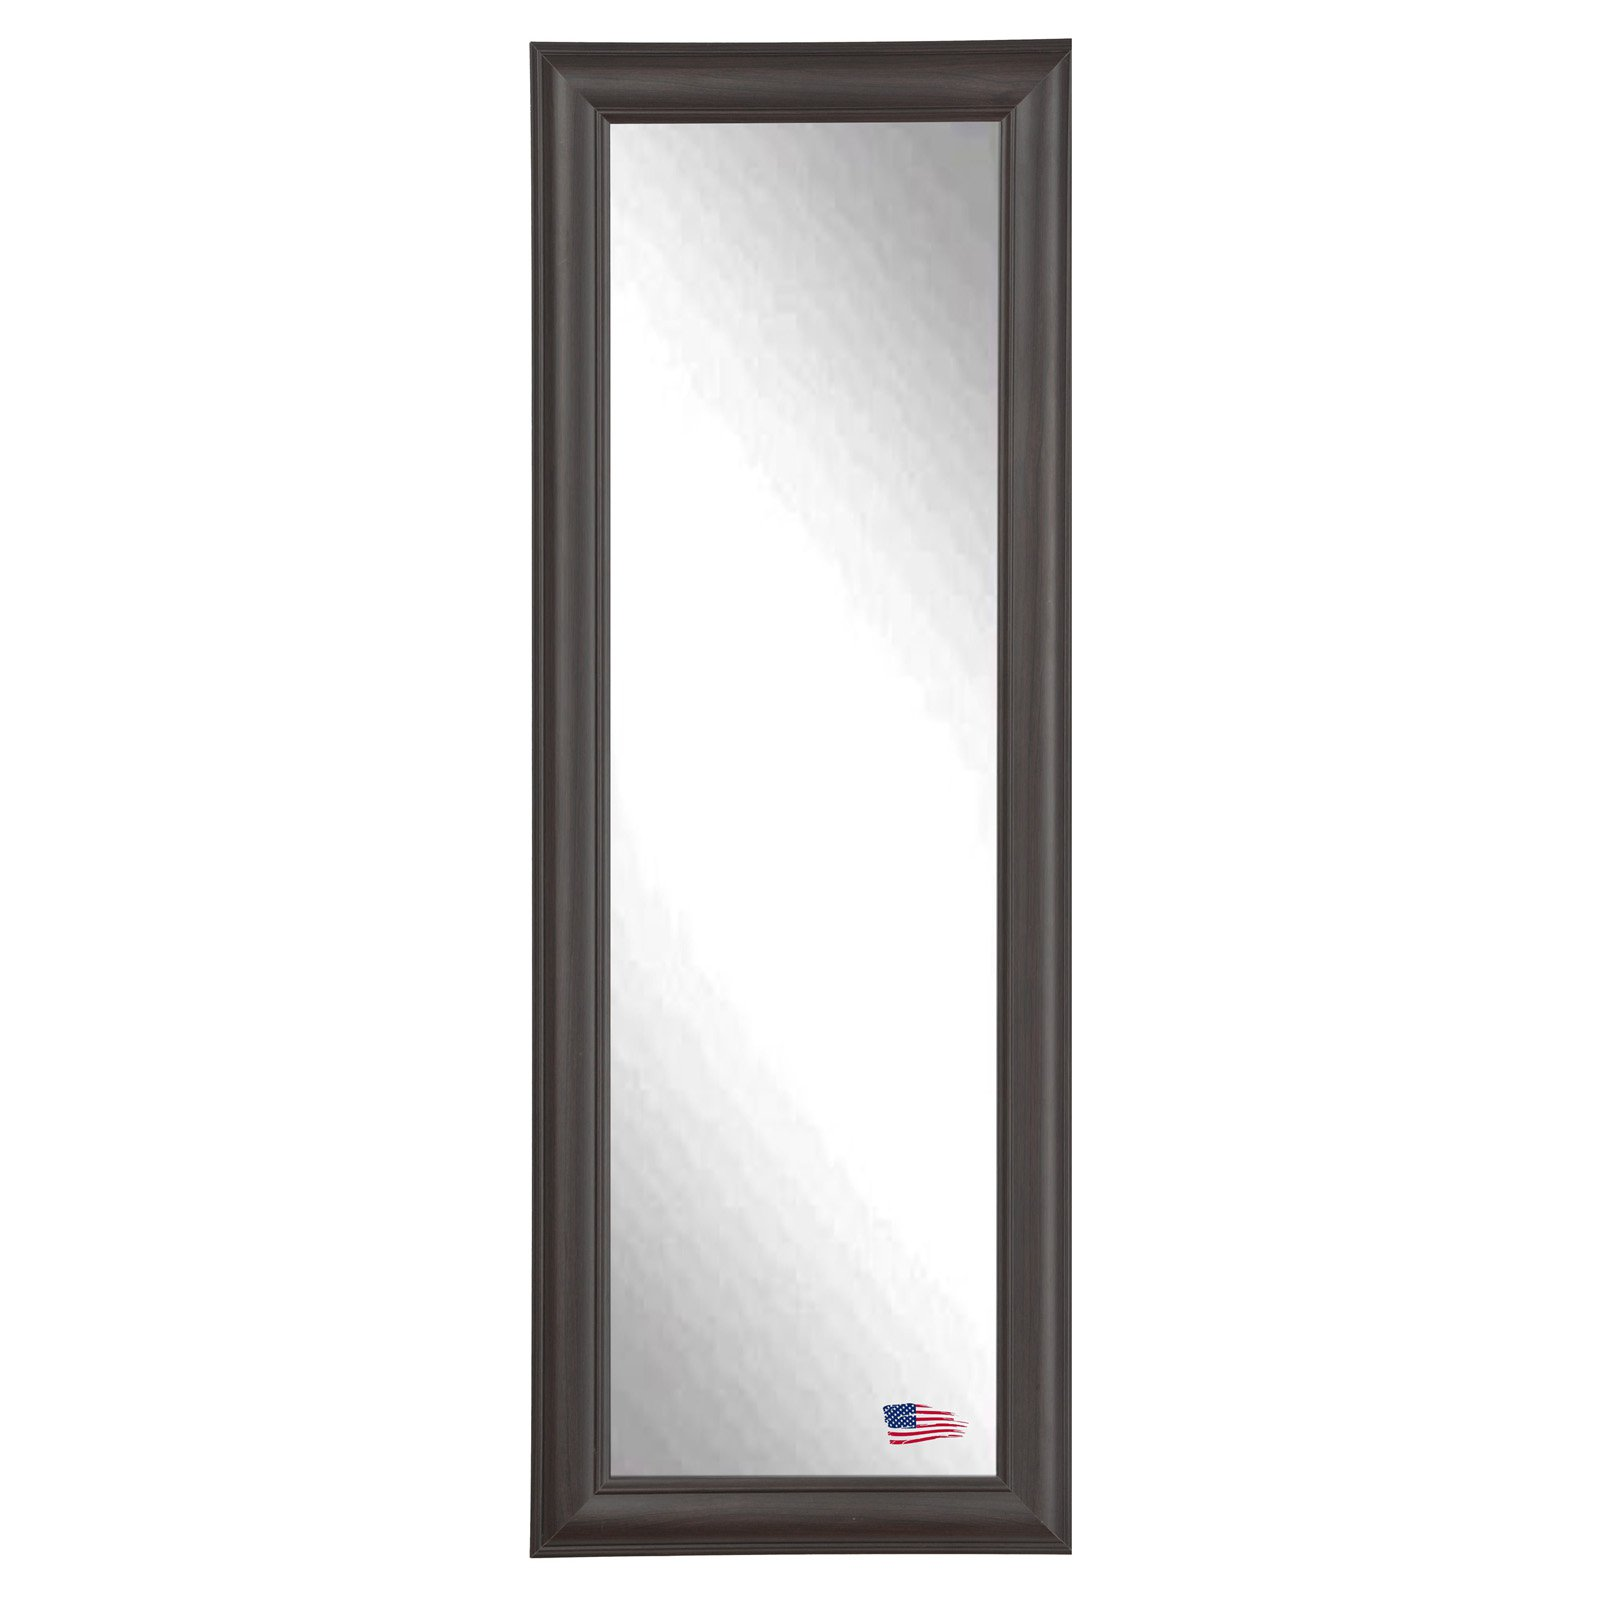 Rayne Mirrors Brazilian Dark Walnut Full Length Body Wall Mirror